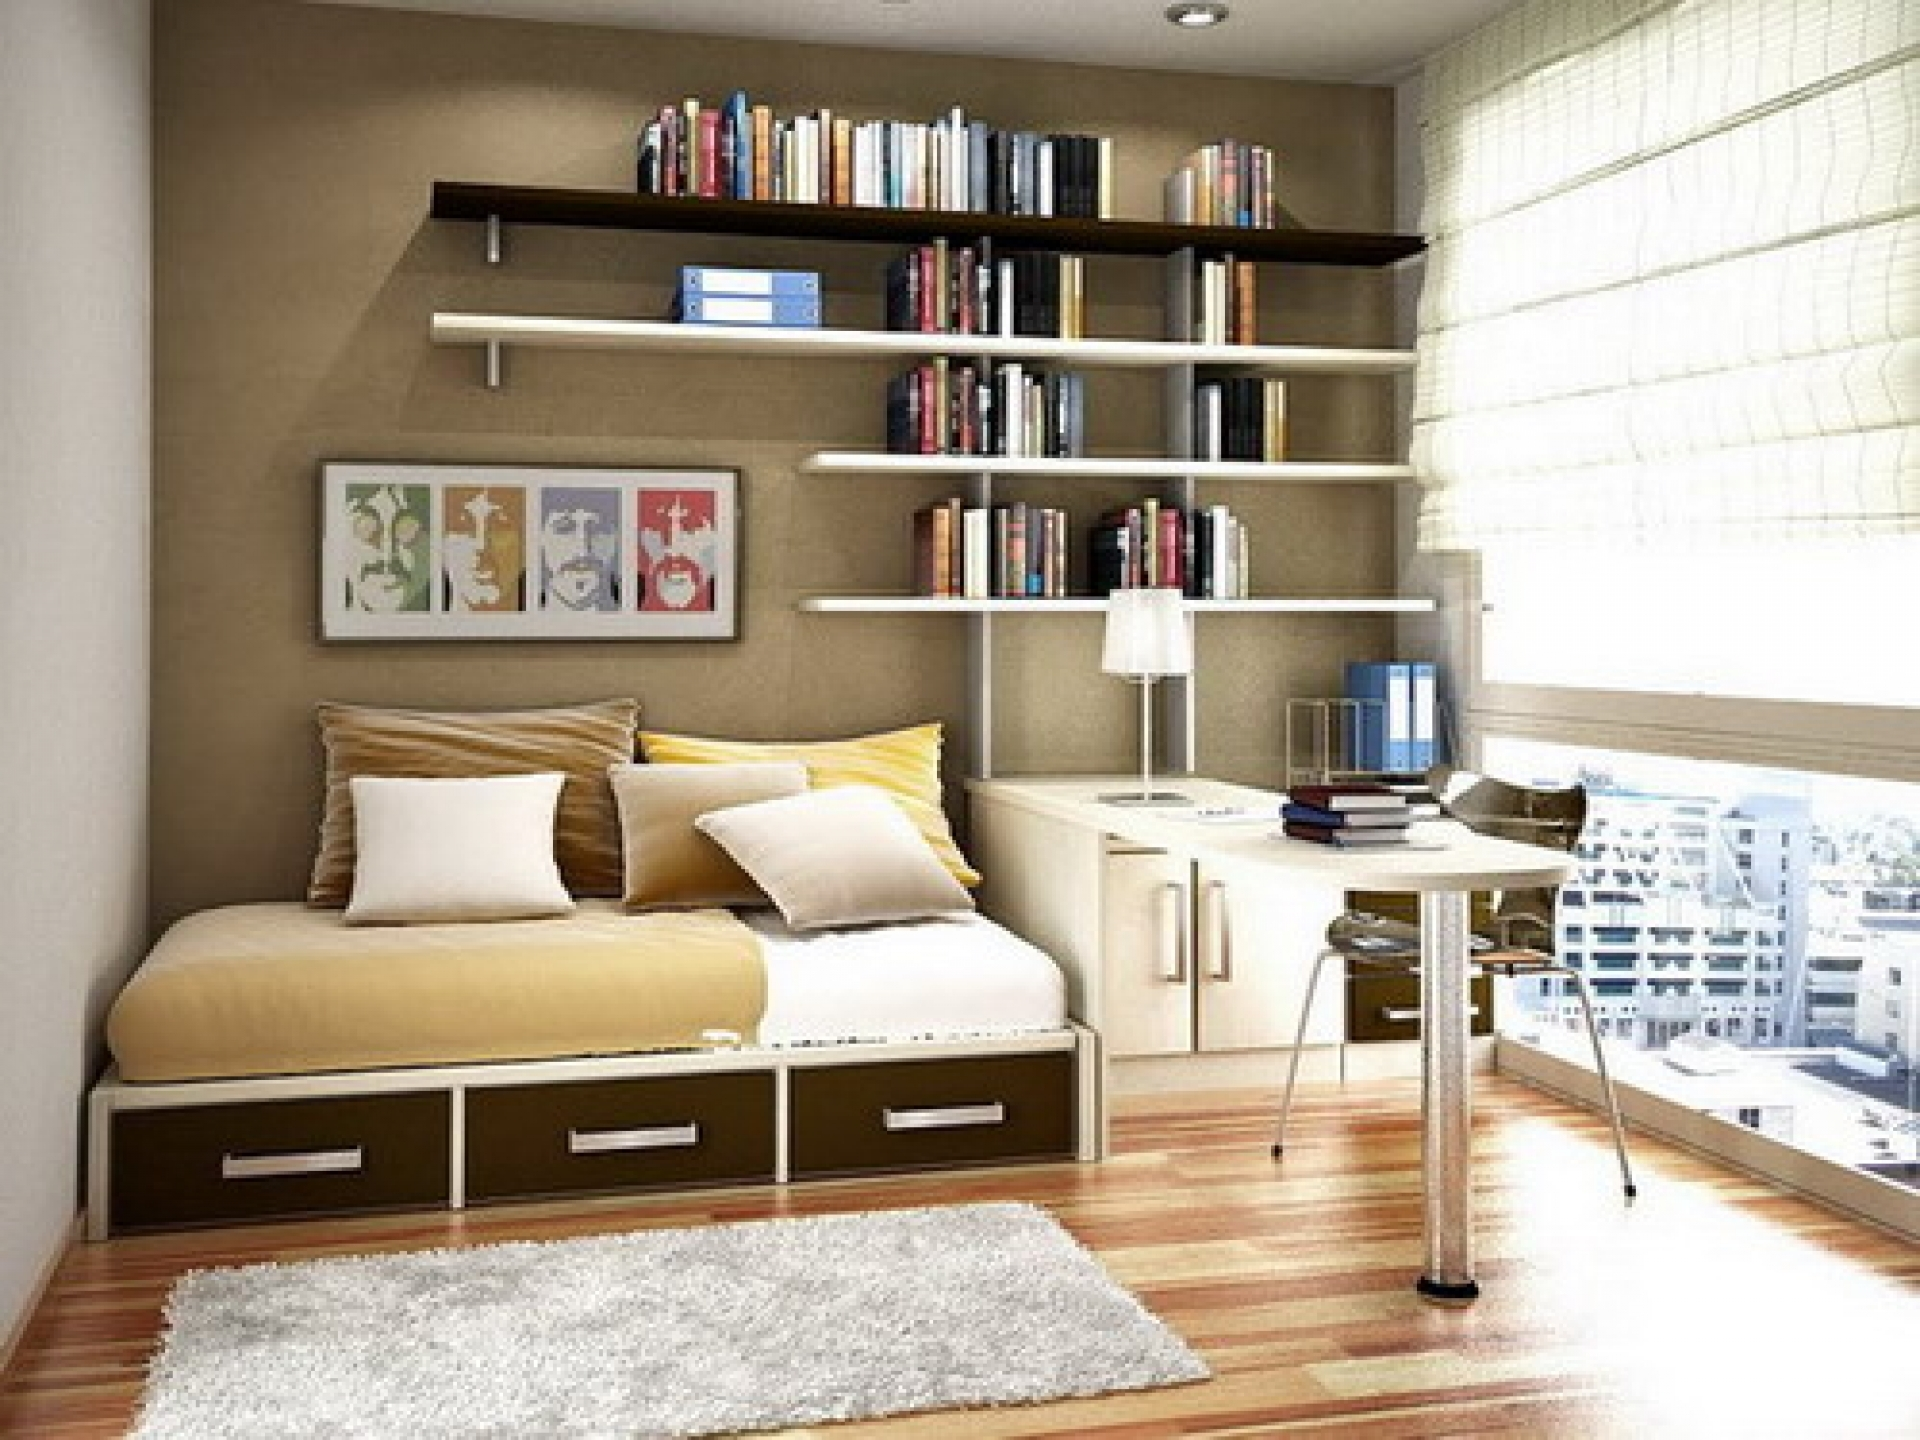 Modish Floating Bookshelves Over Sleeper Couch Storage And Throughout Study Bookshelves (#11 of 15)